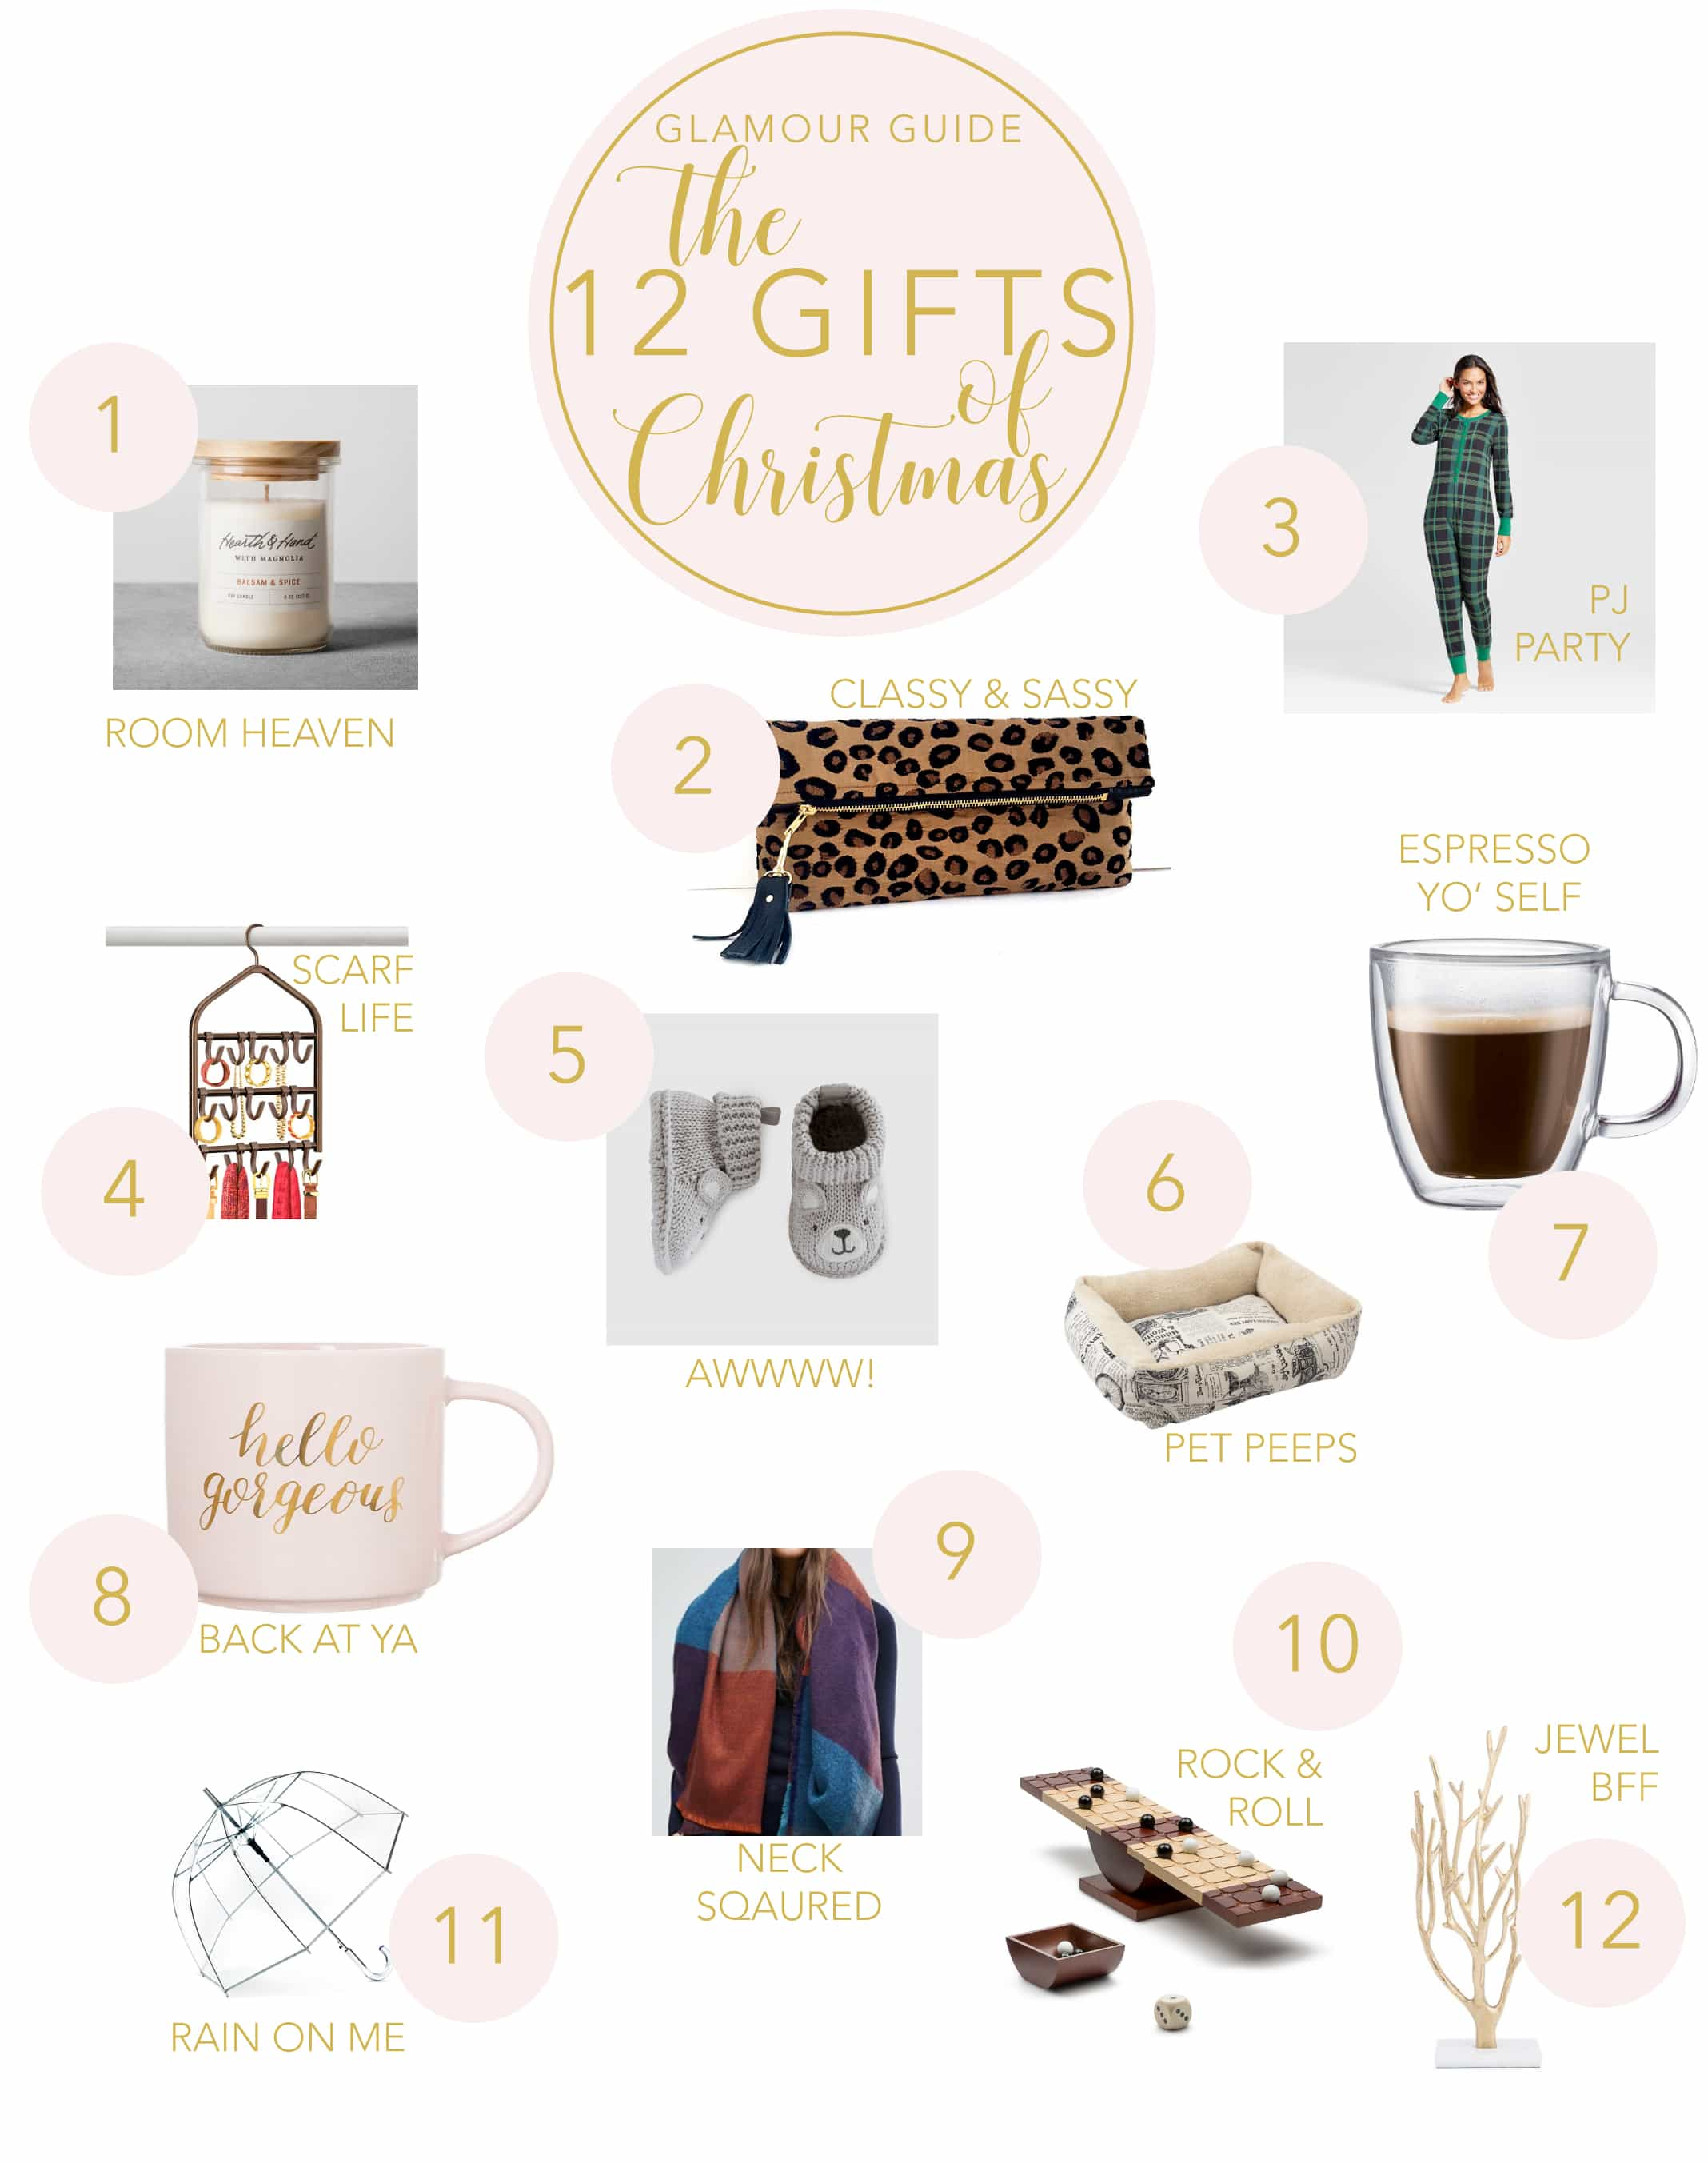 Glamour Guide   12 Gifts of Christmas